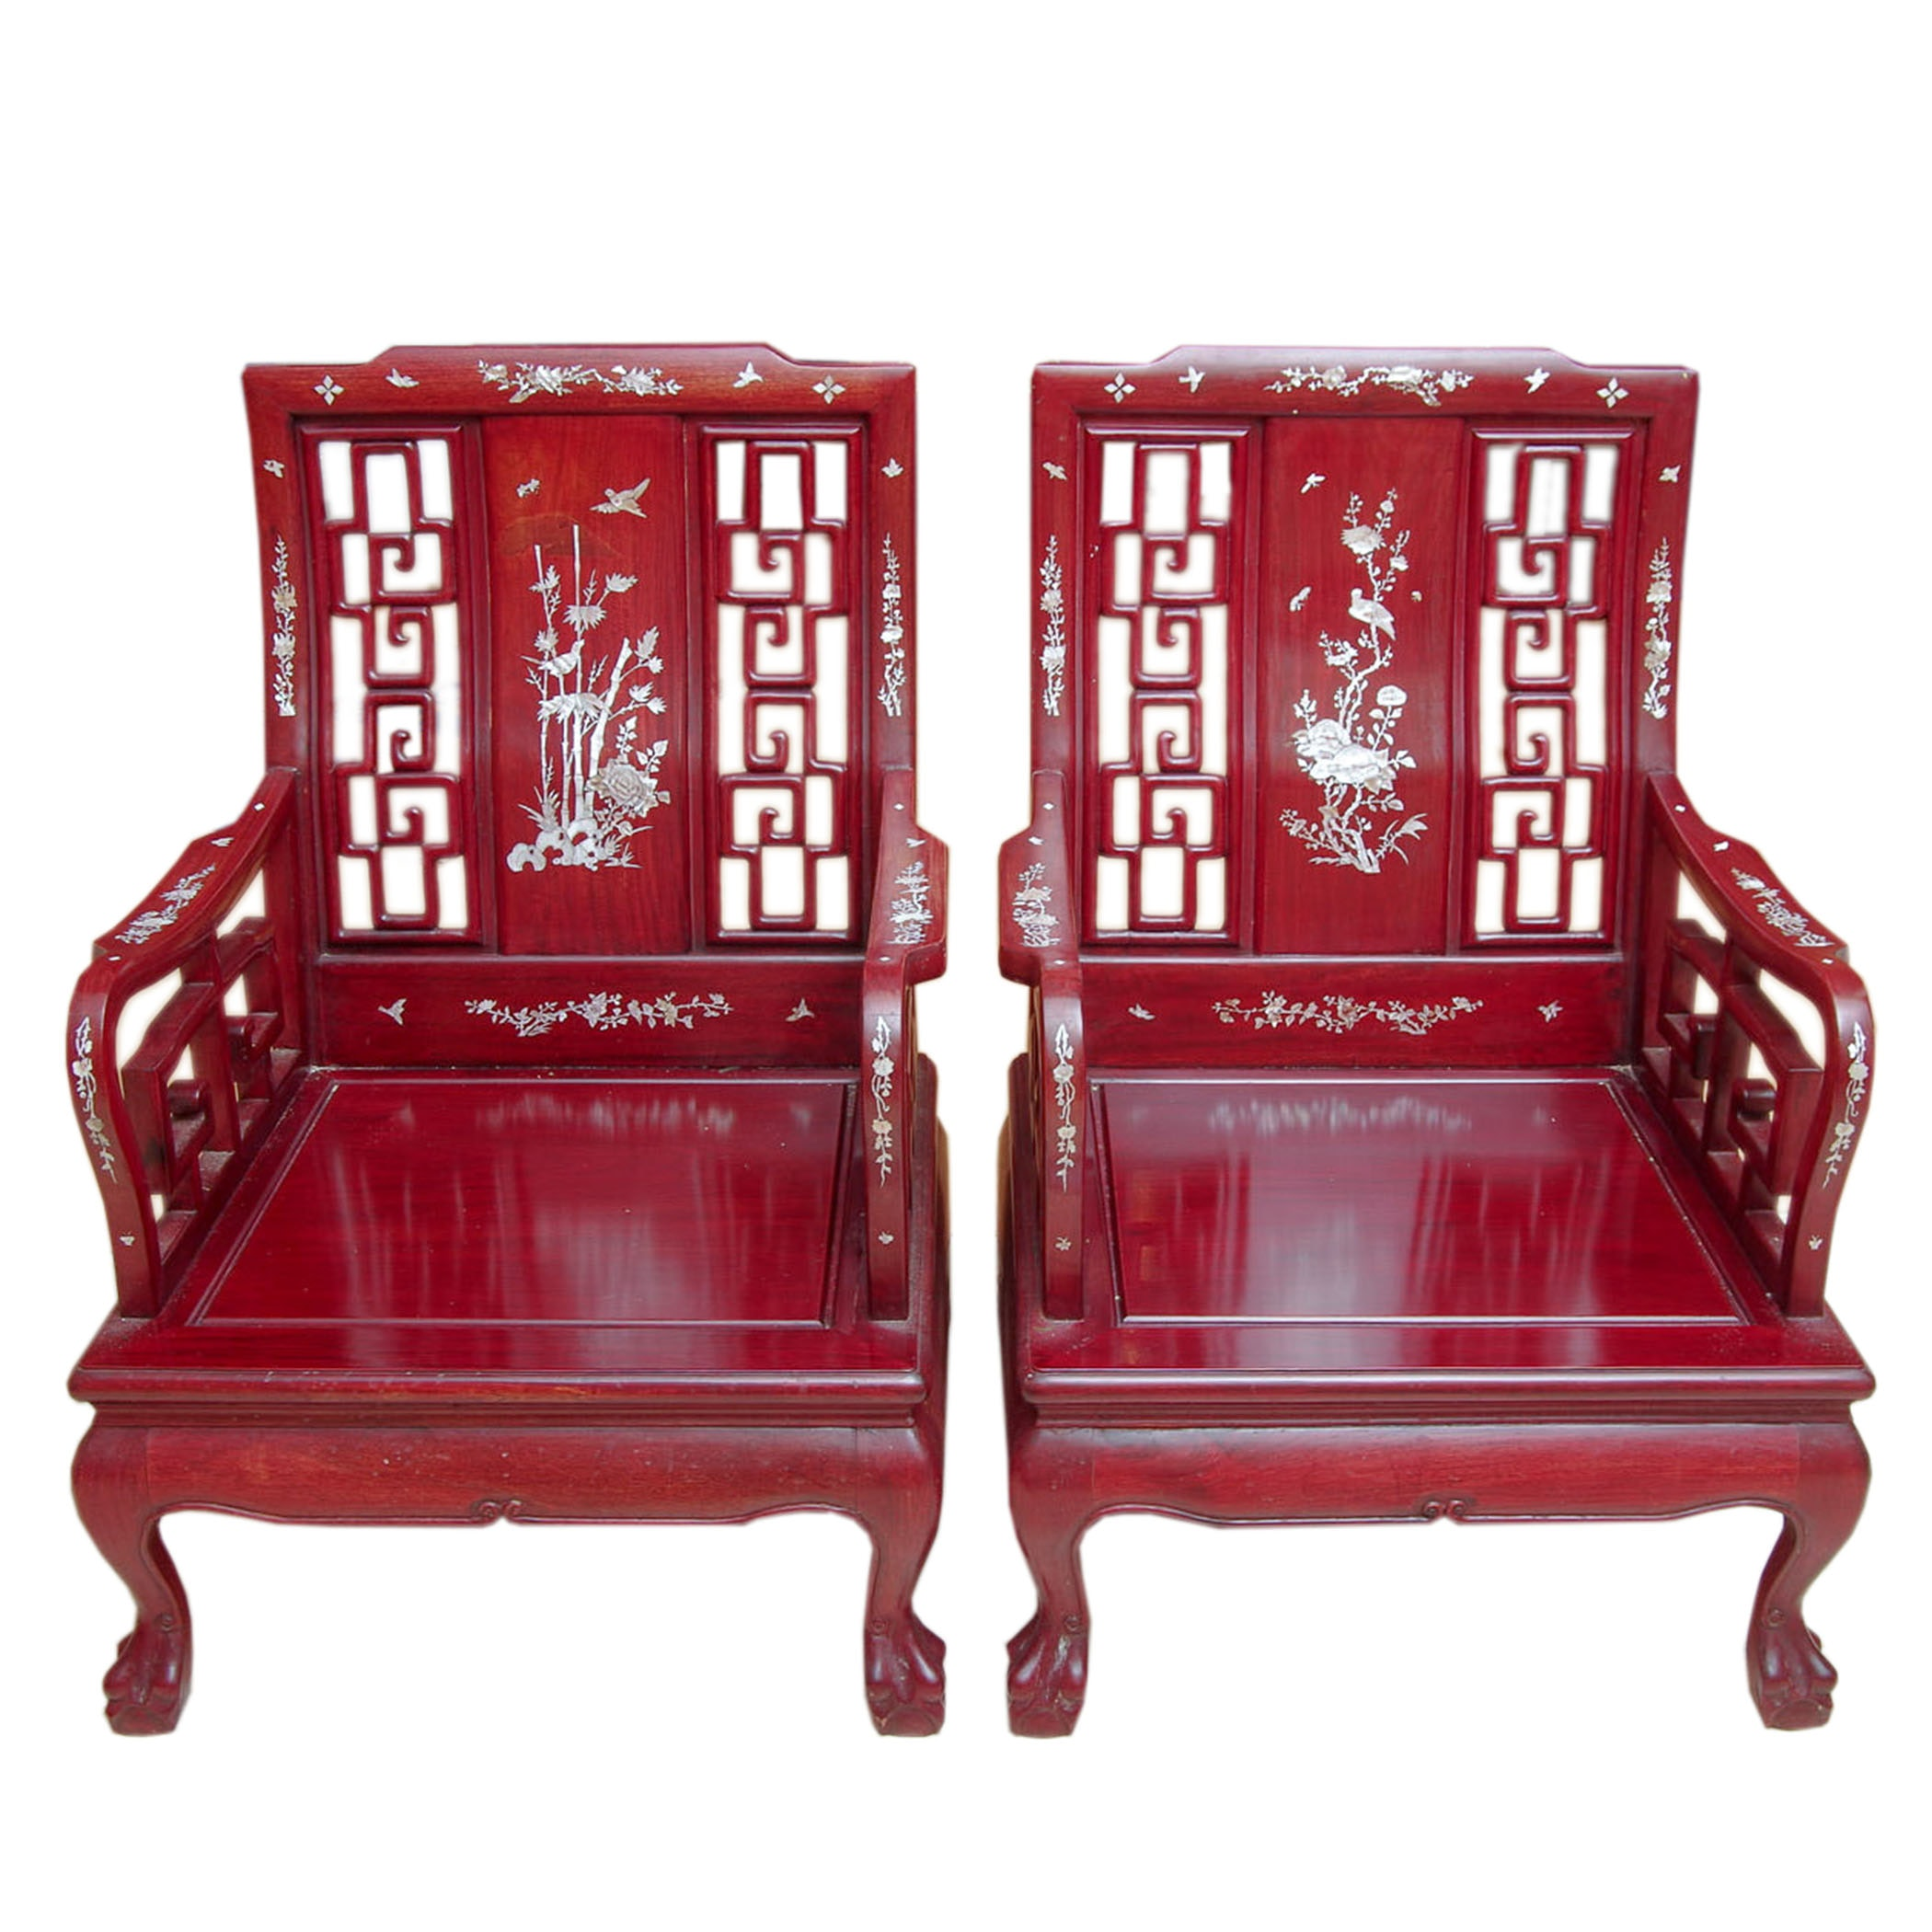 Pair Of Chinese Rosewood Mother Of Pearl Inlaid Chairs ...